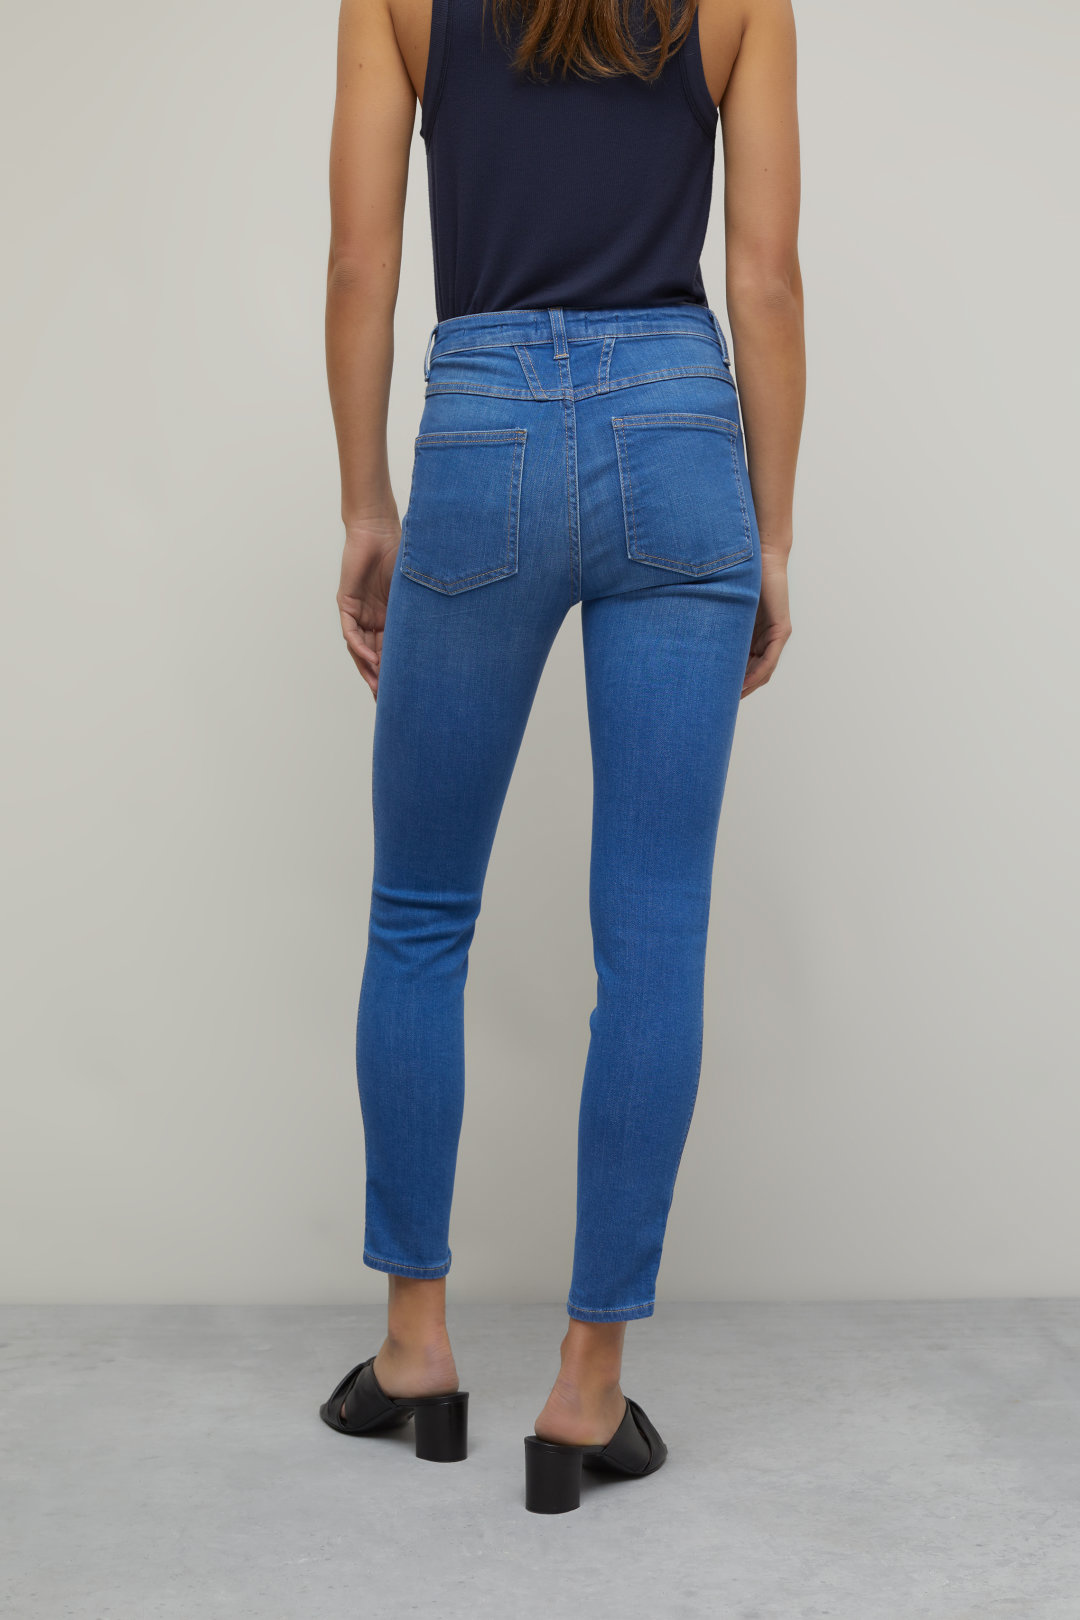 Closed Jeans C91231 08T 9V-2